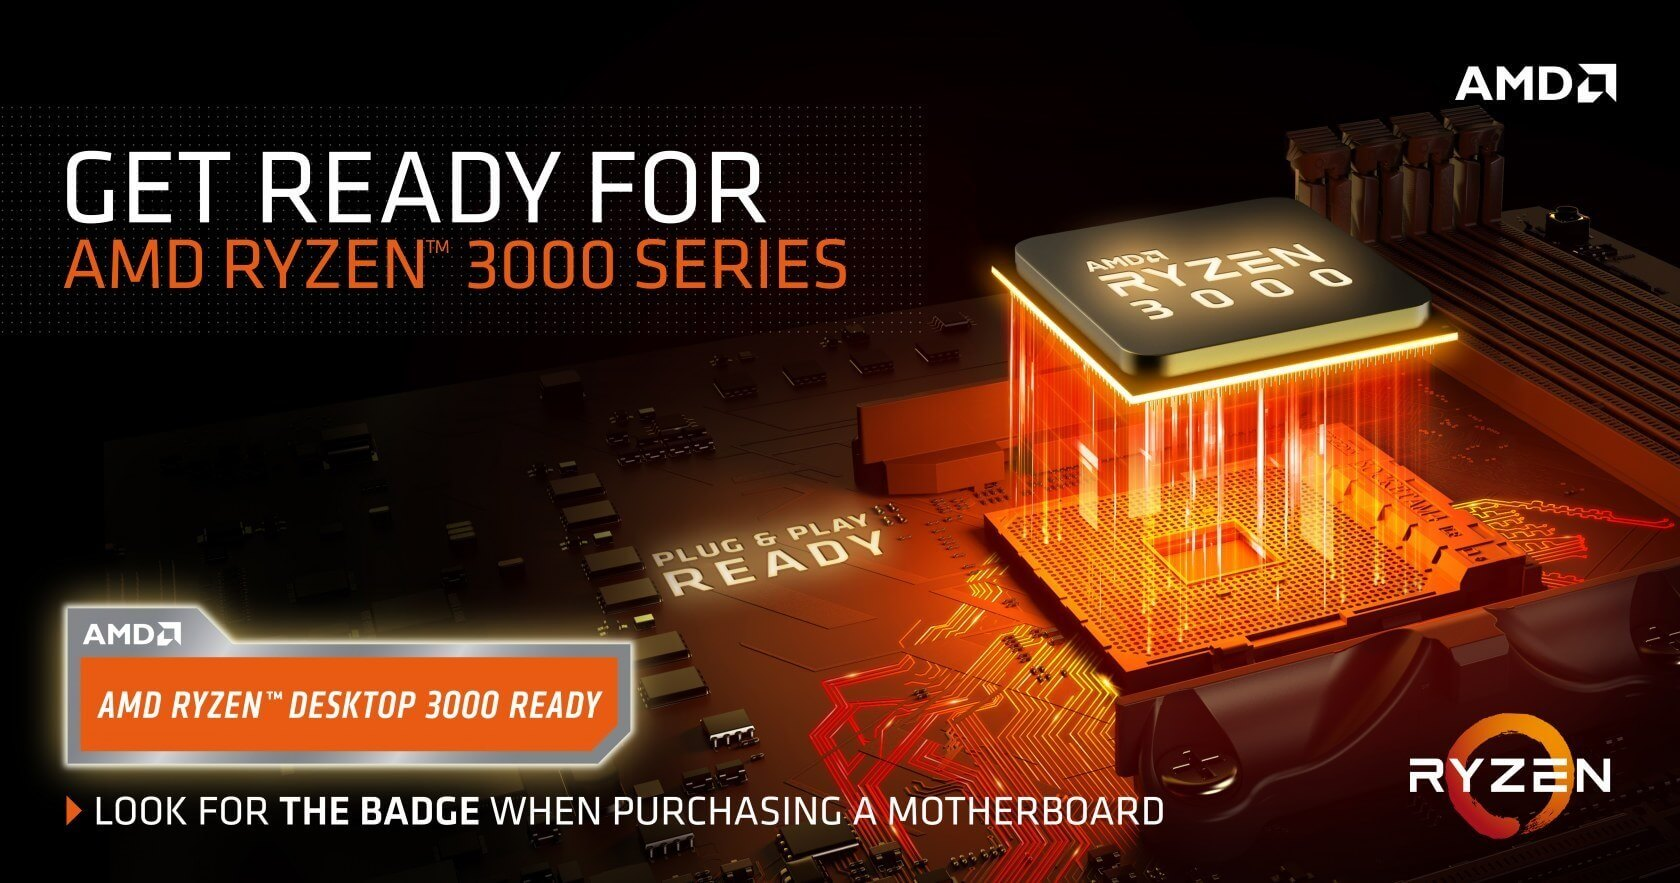 AMD assures Ryzen 3000 will perform equally across B450